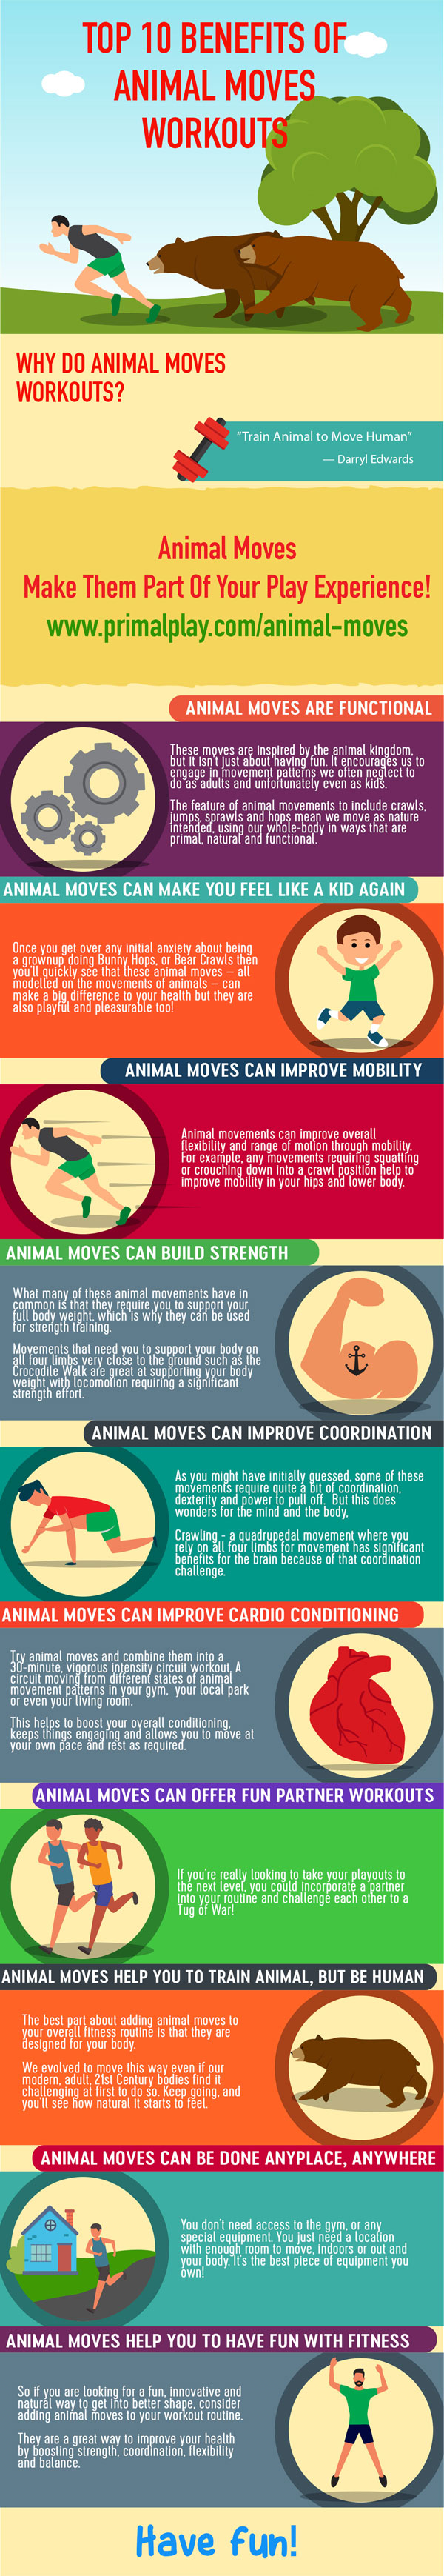 Have fun with   Animal Moves   workouts!